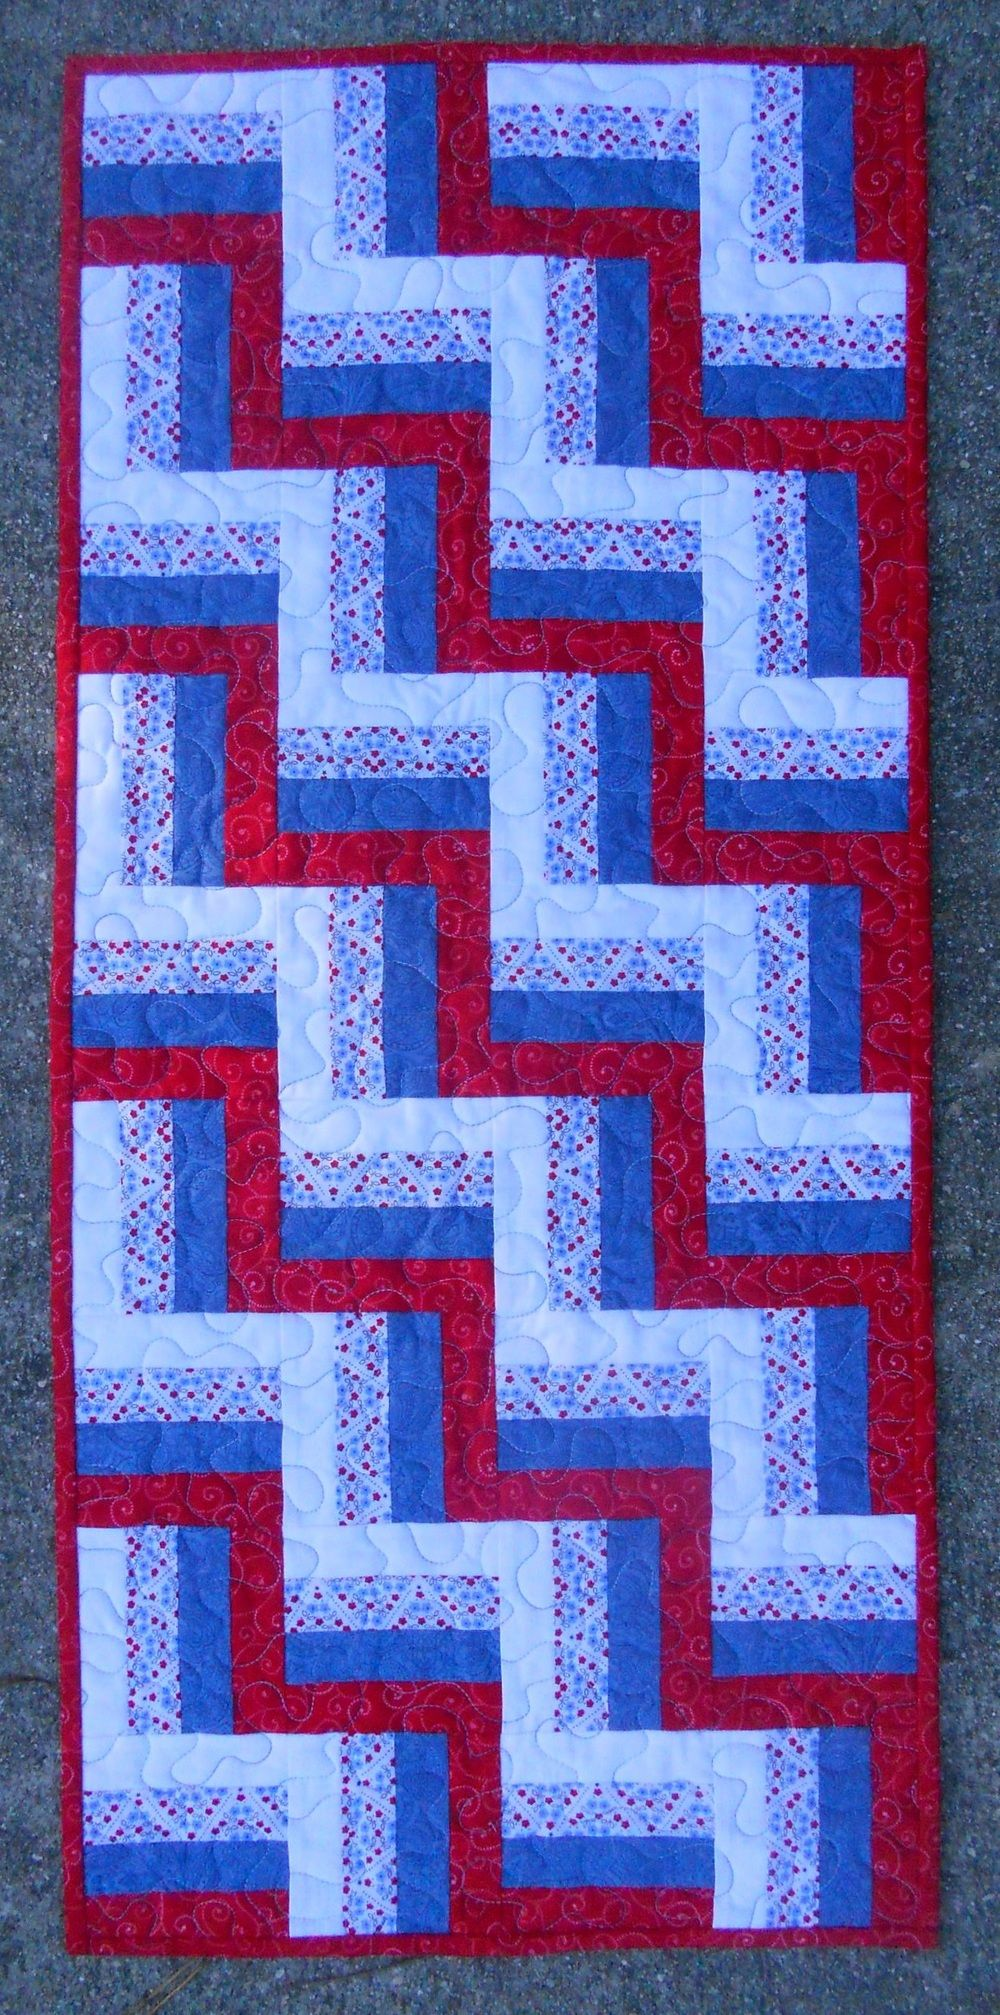 lickity split rail fence table runner quilting table runners rh pinterest com Country Table Runners Quilted Table Runner Patterns